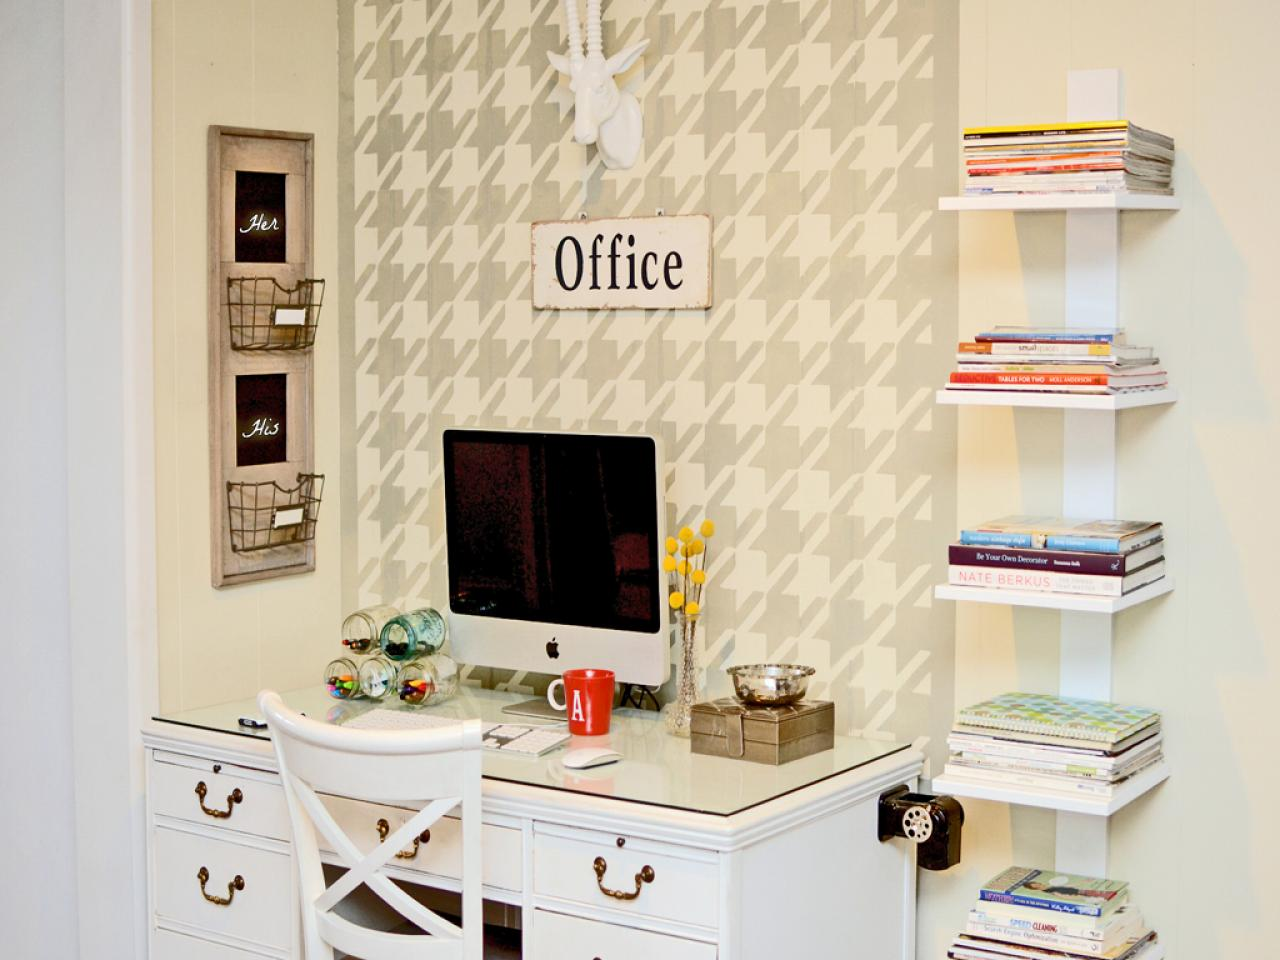 Amazing Related To: Office Organization Decluttering Home Offices Organization home office organization